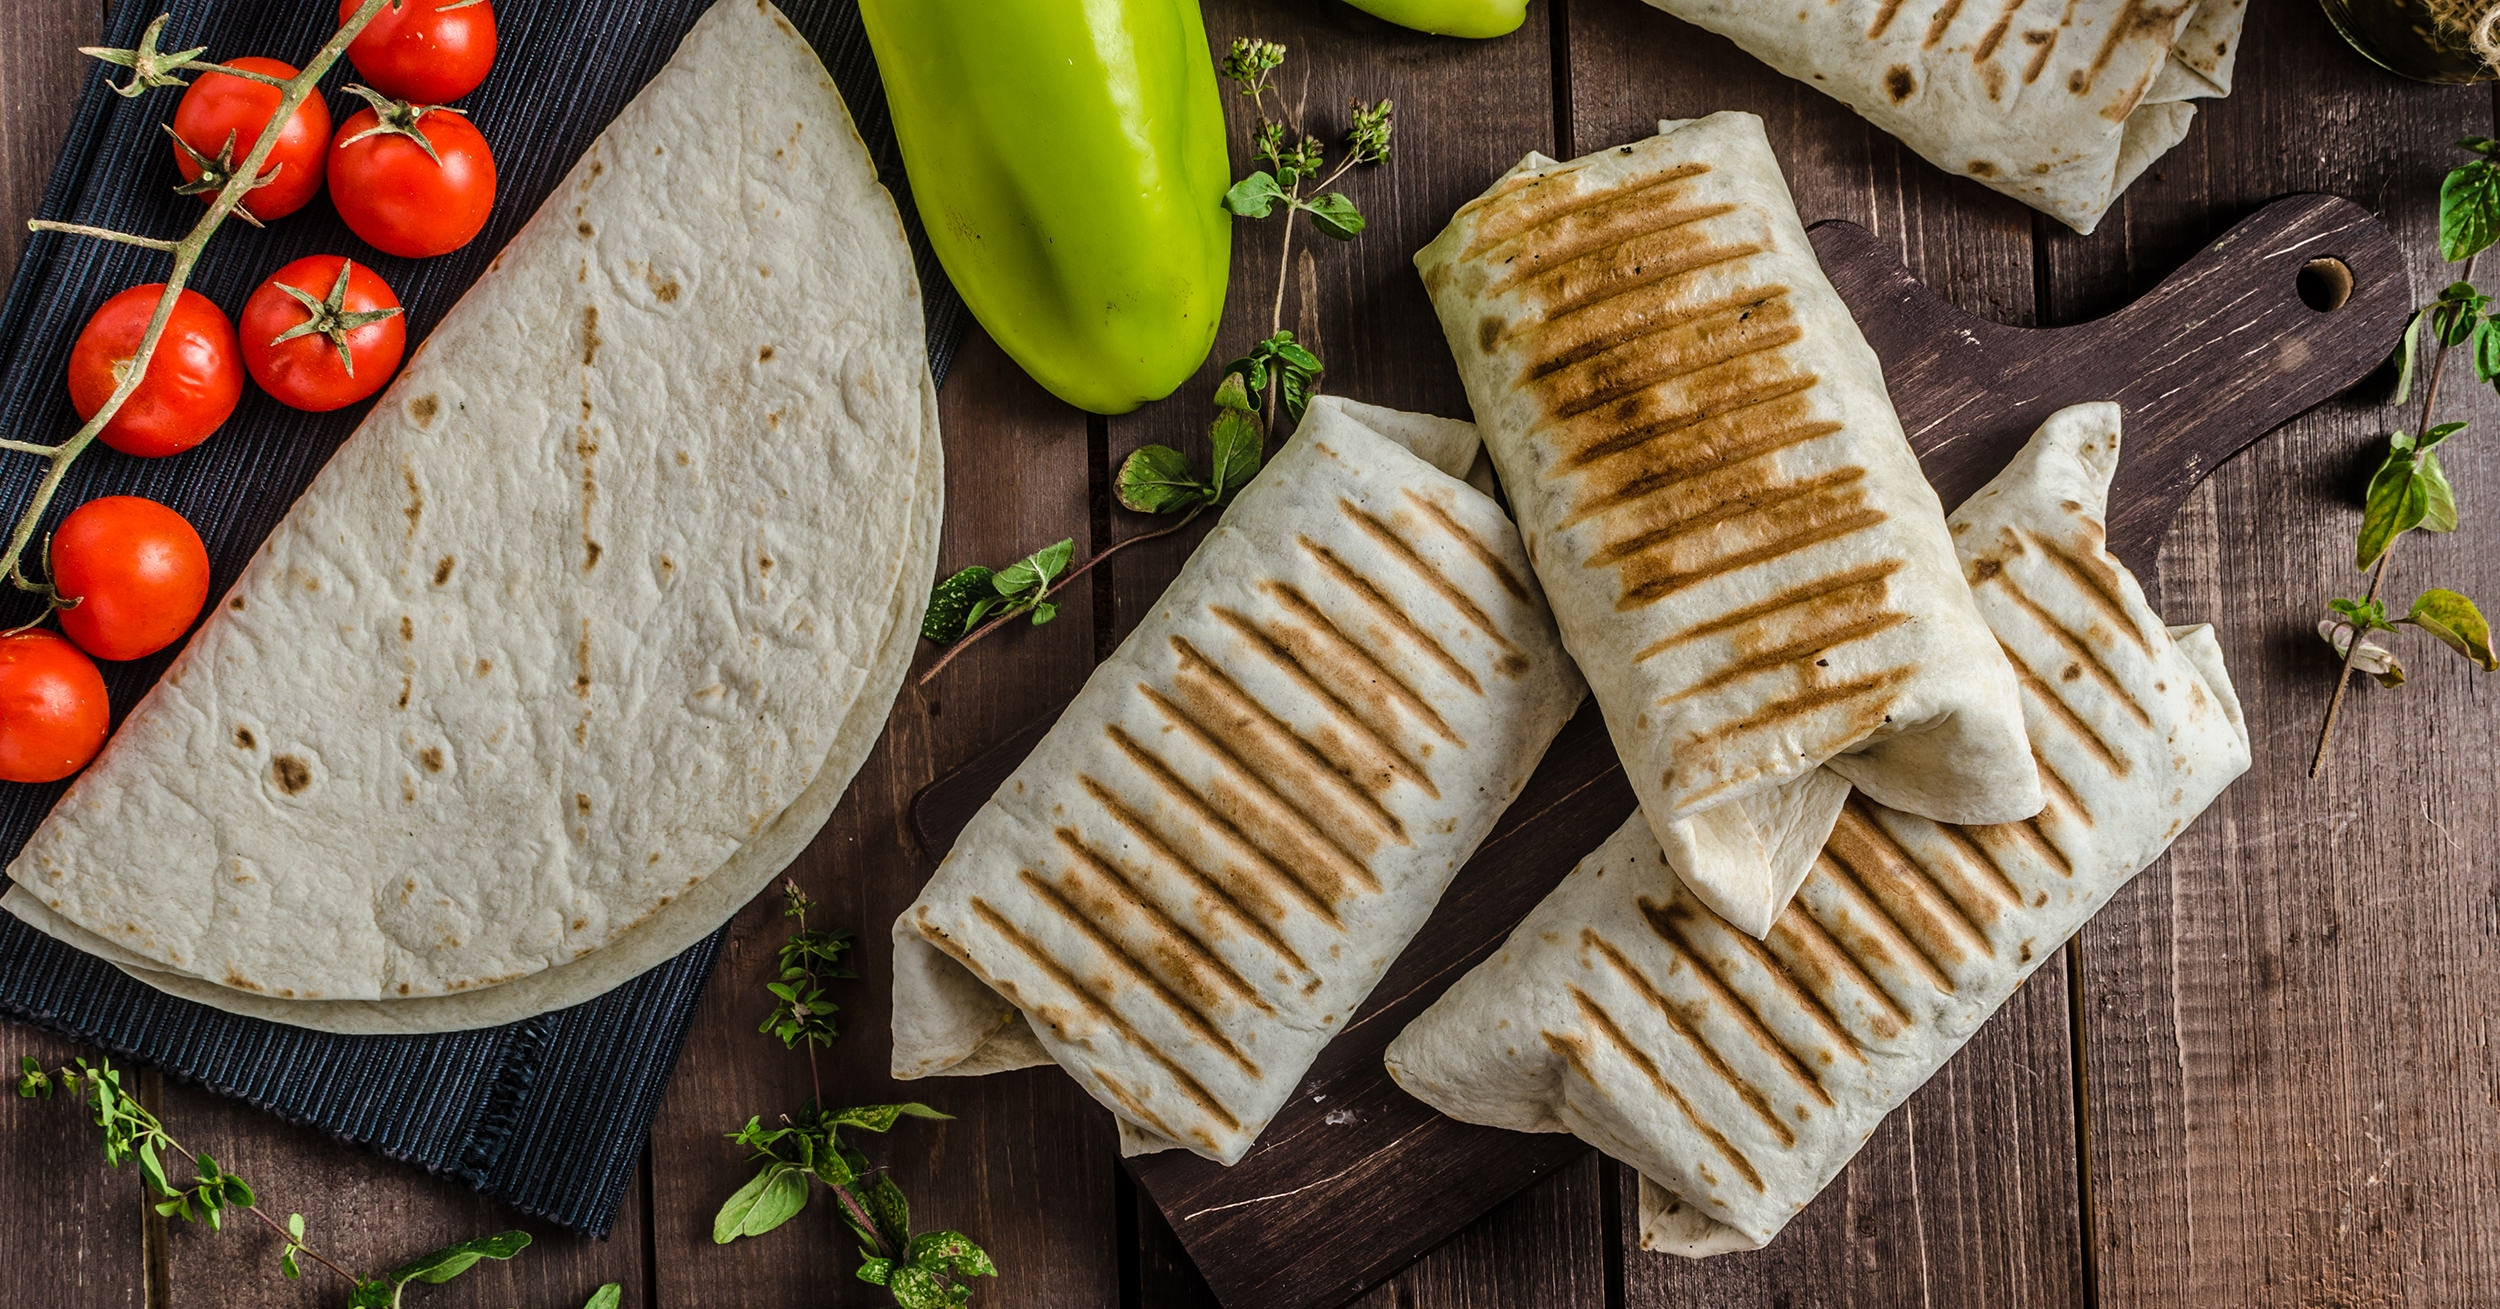 Plant-based breakfast burrito, healthy and hearty, and vegan brunch ideas.